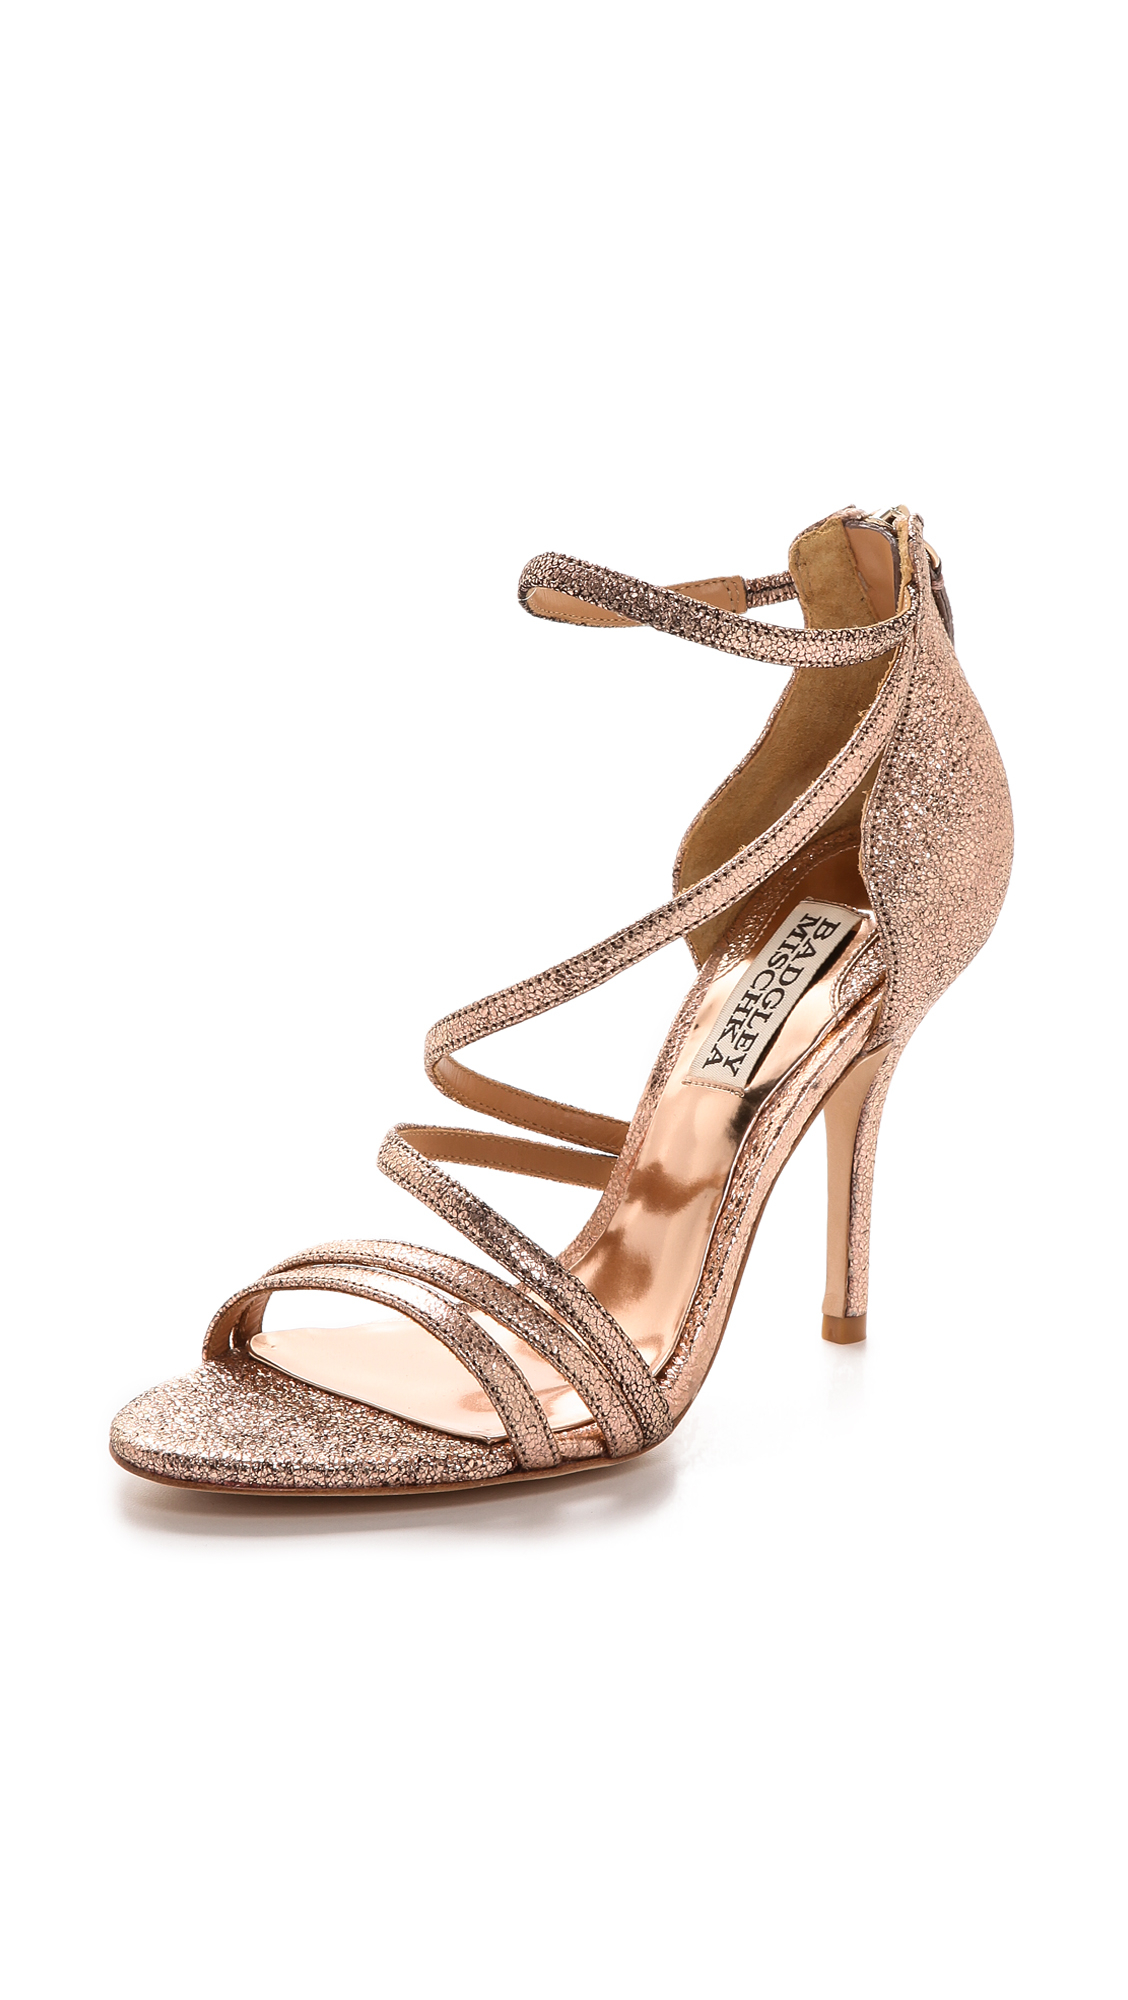 Badgley mischka Landmark Ii Strappy Sandals Rose Gold in Pink